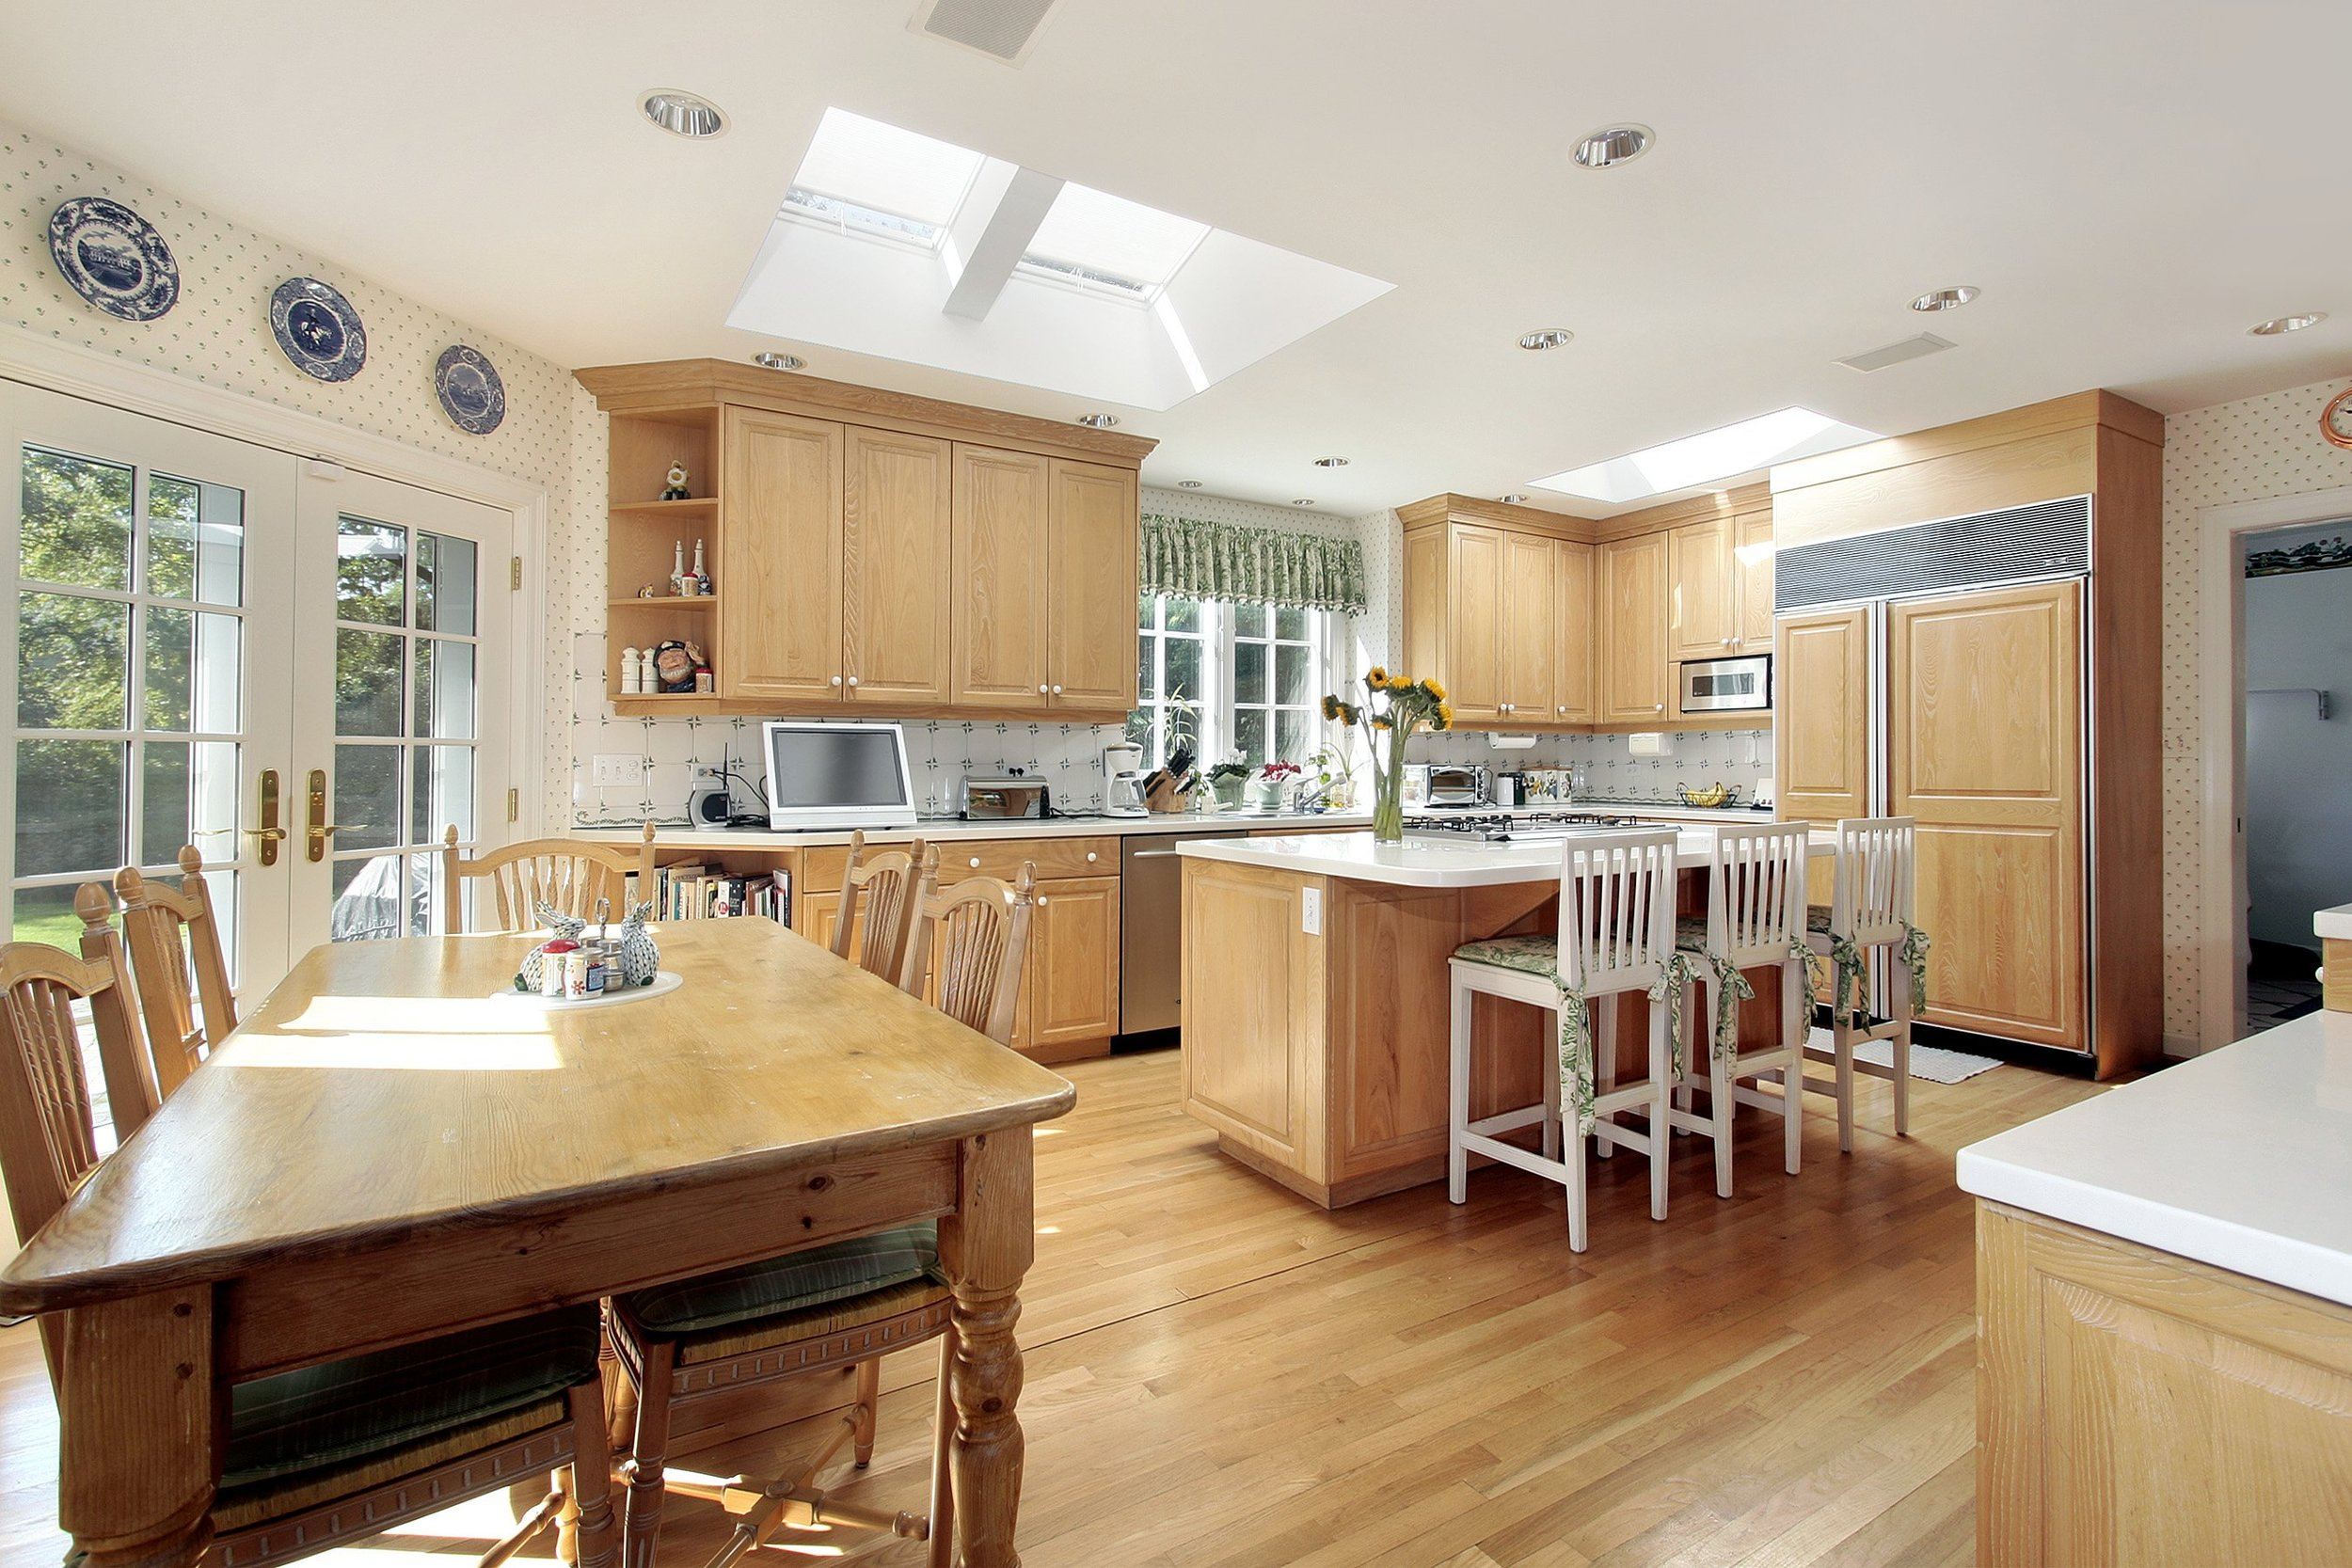 Kitchen-WithLightWood-Traditional-shutterstock_29066182.jpg